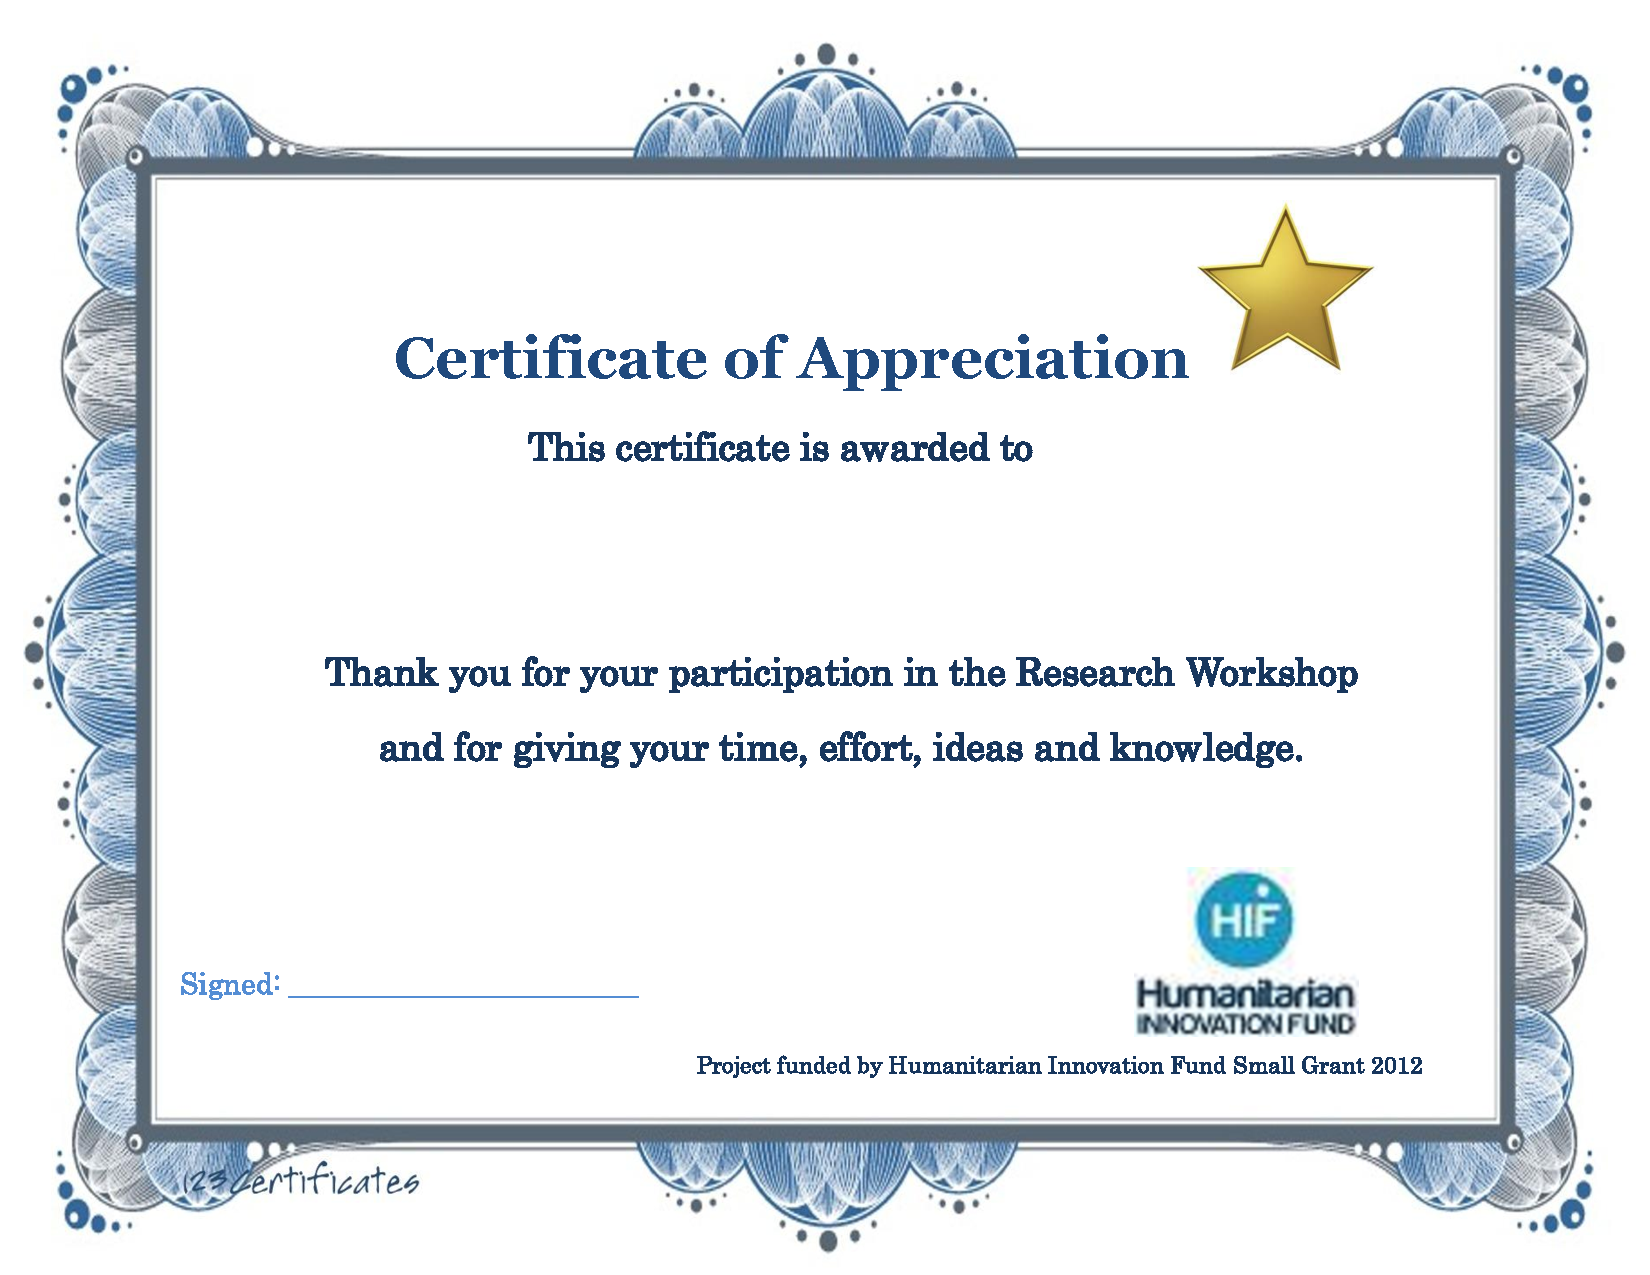 Wonderful Appreciation Training Certificate Completion Thank You Word Letter Free  Sample Letters Good Intended Free Appreciation Certificate Templates For Word